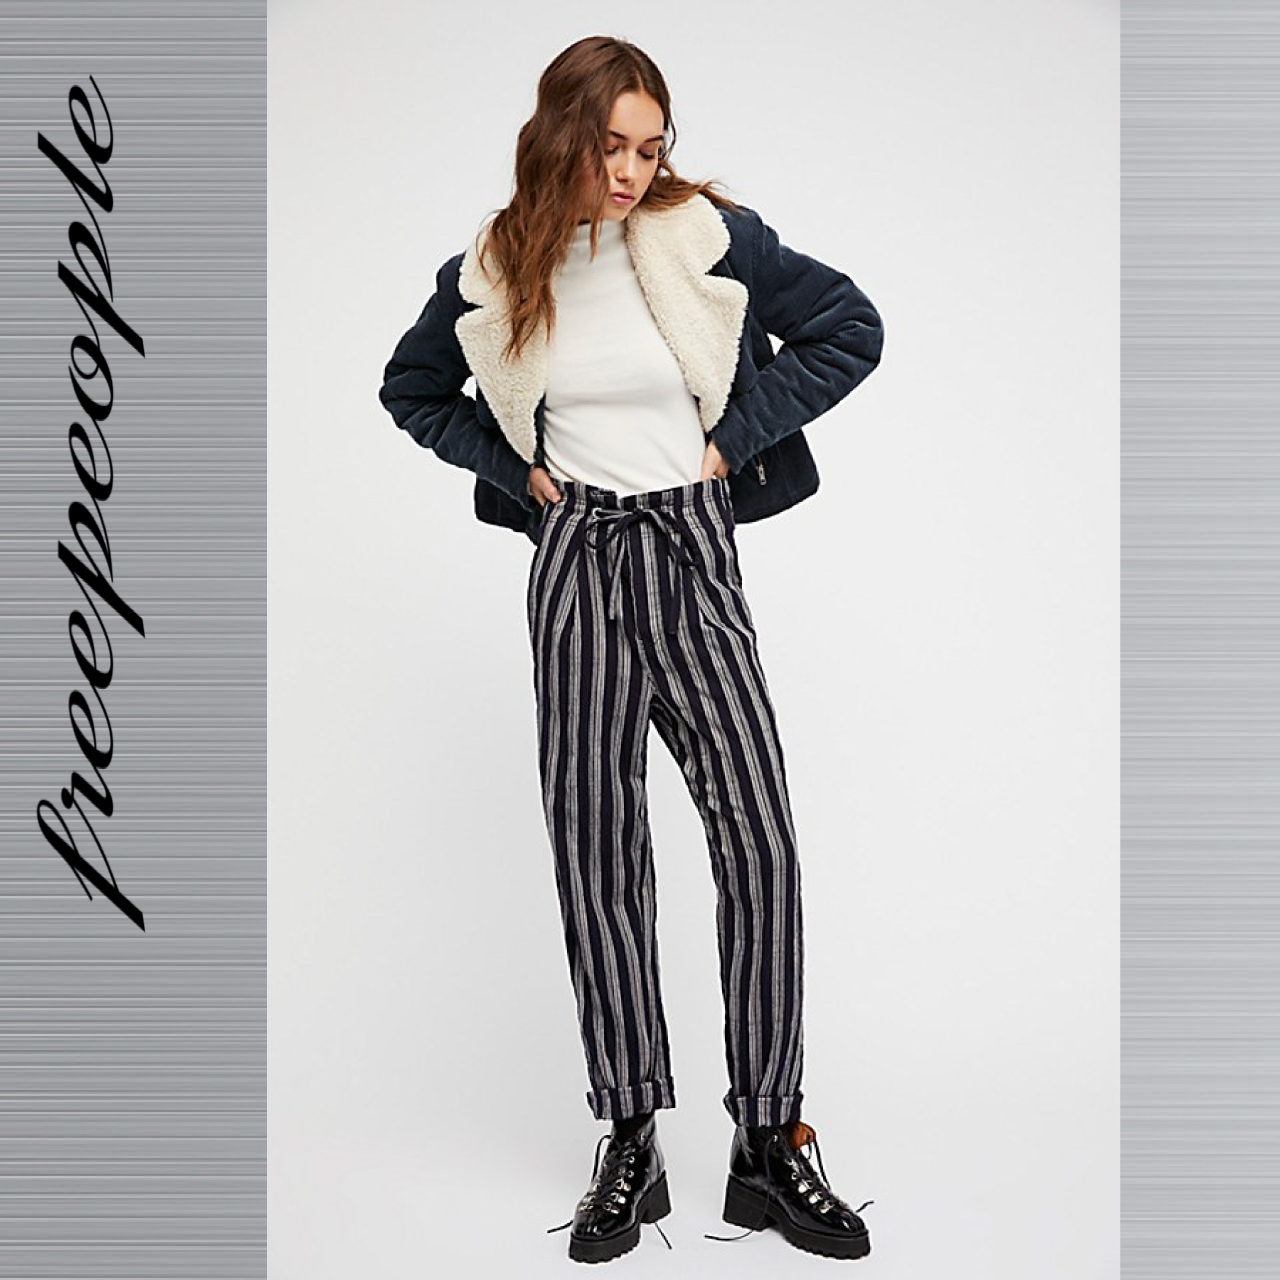 free people フリーピープル Here And There パンツ 送料無料